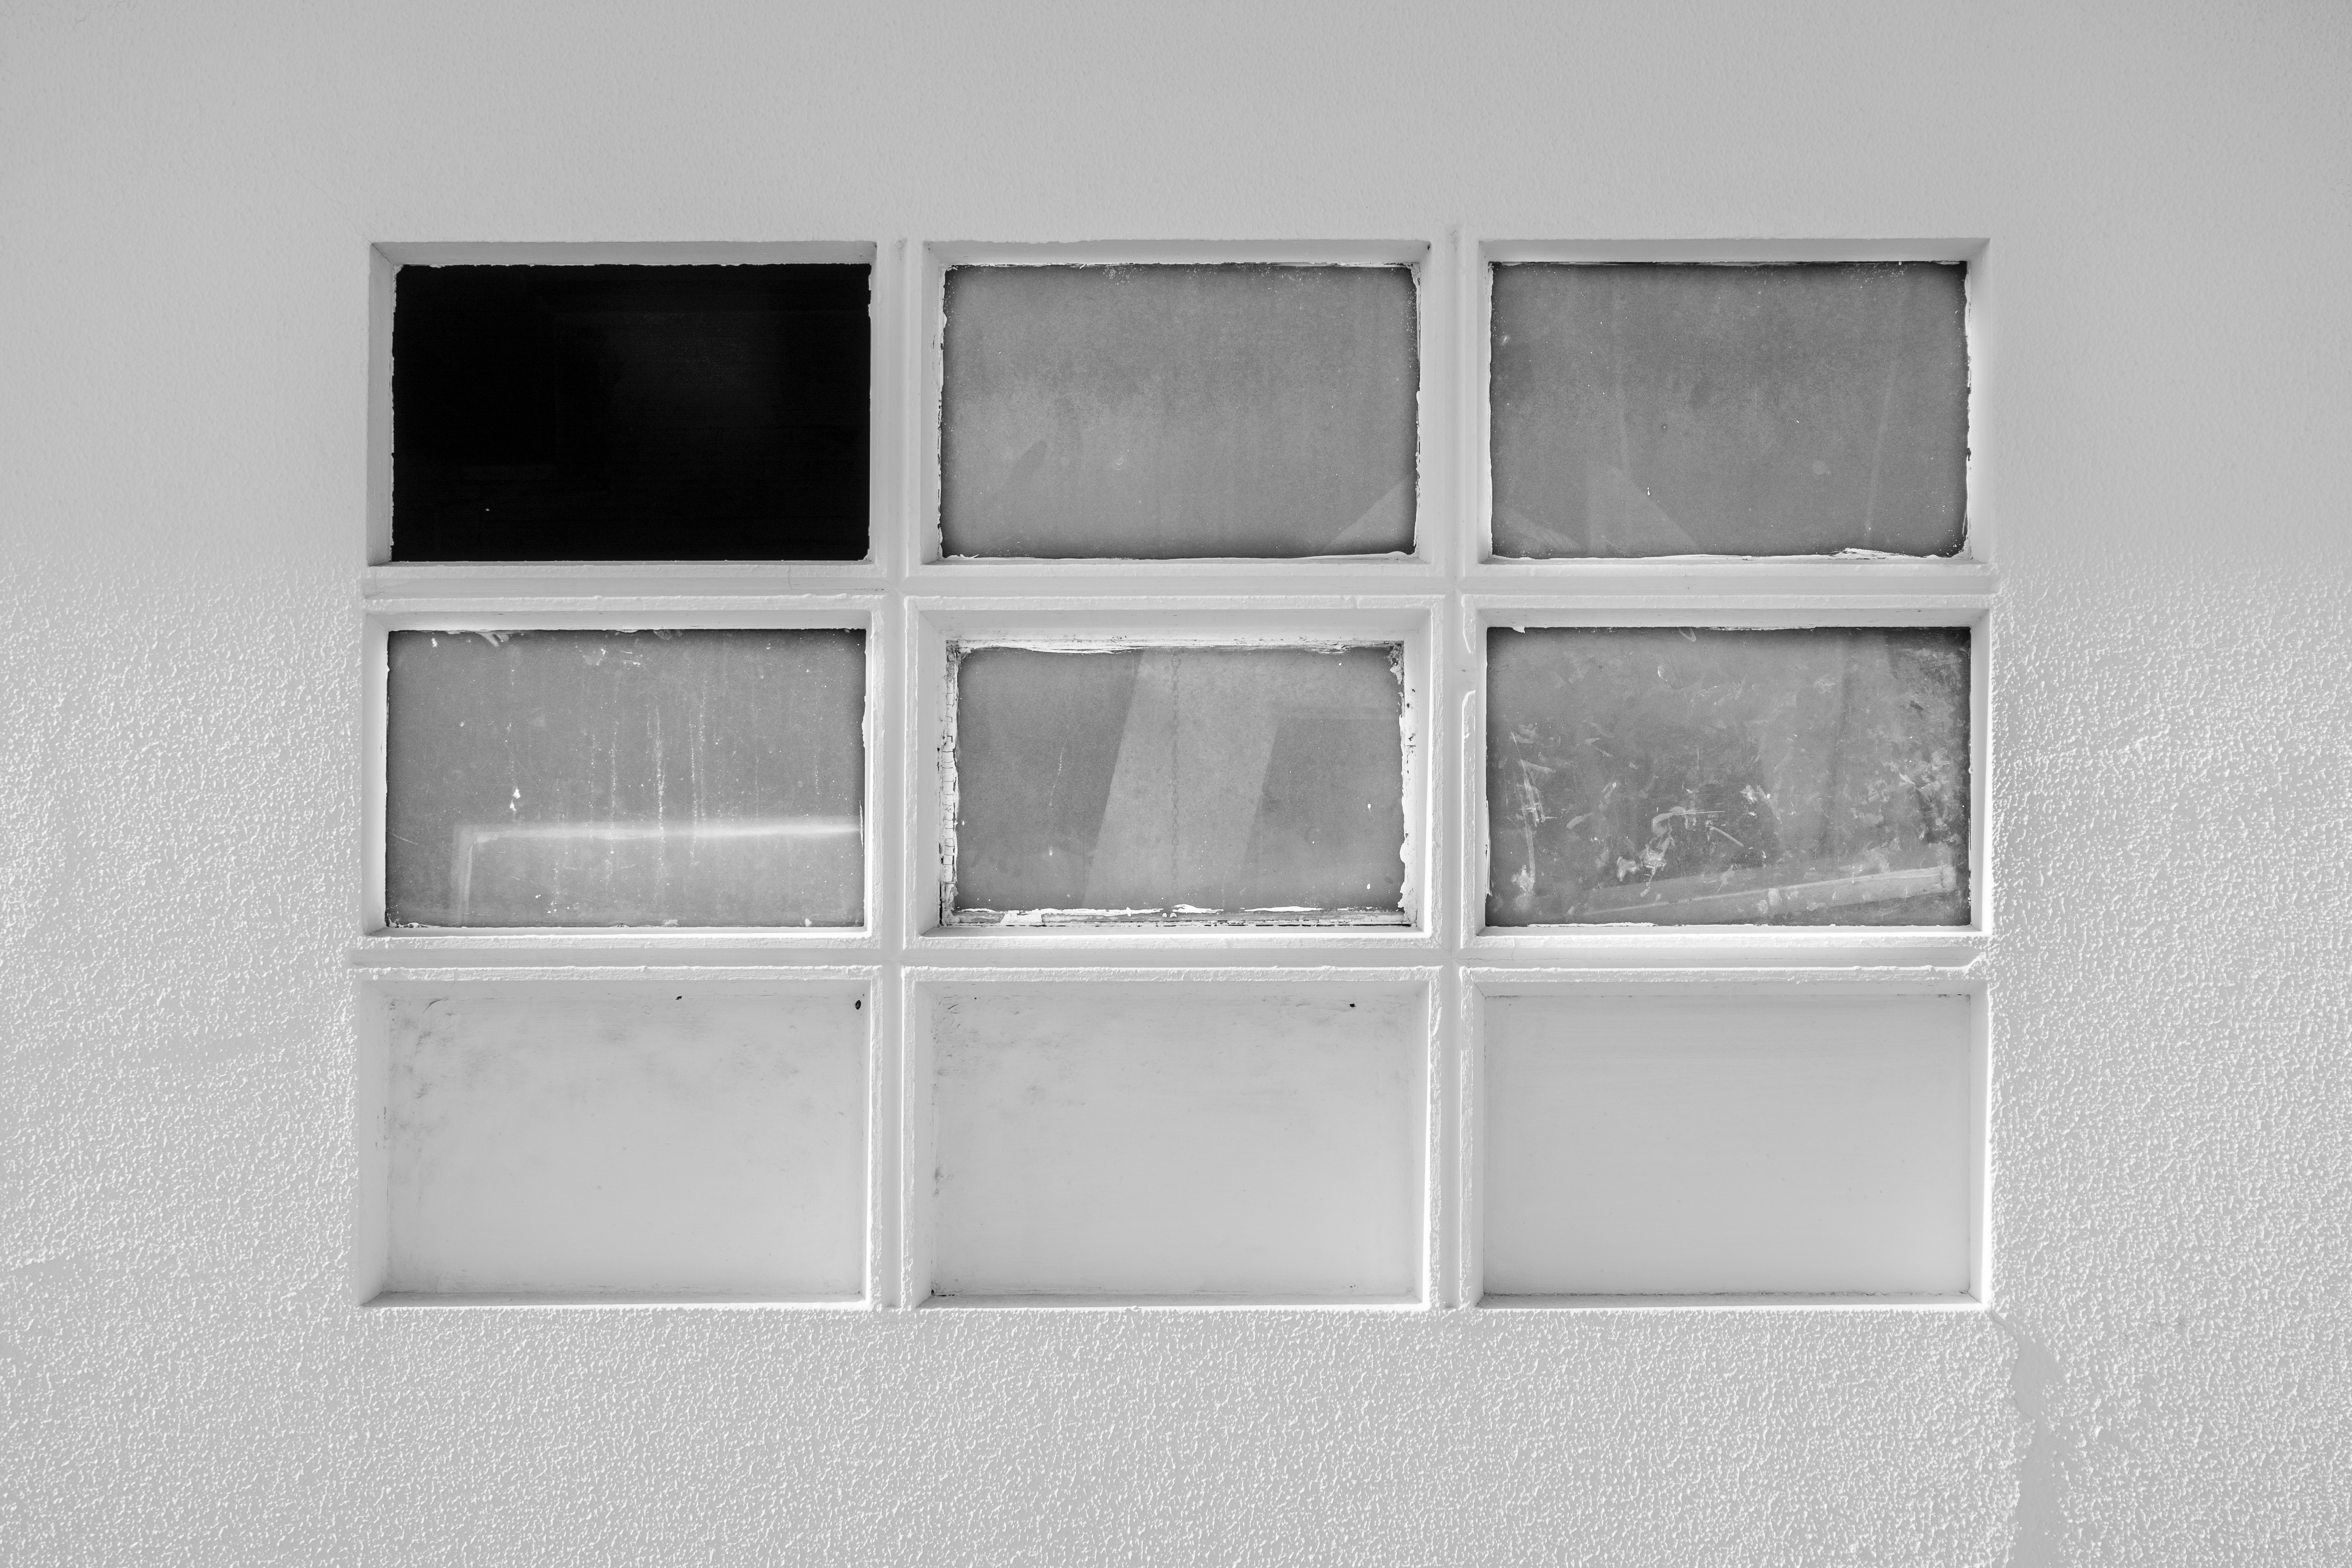 Black and white image of a window with a missing pane.